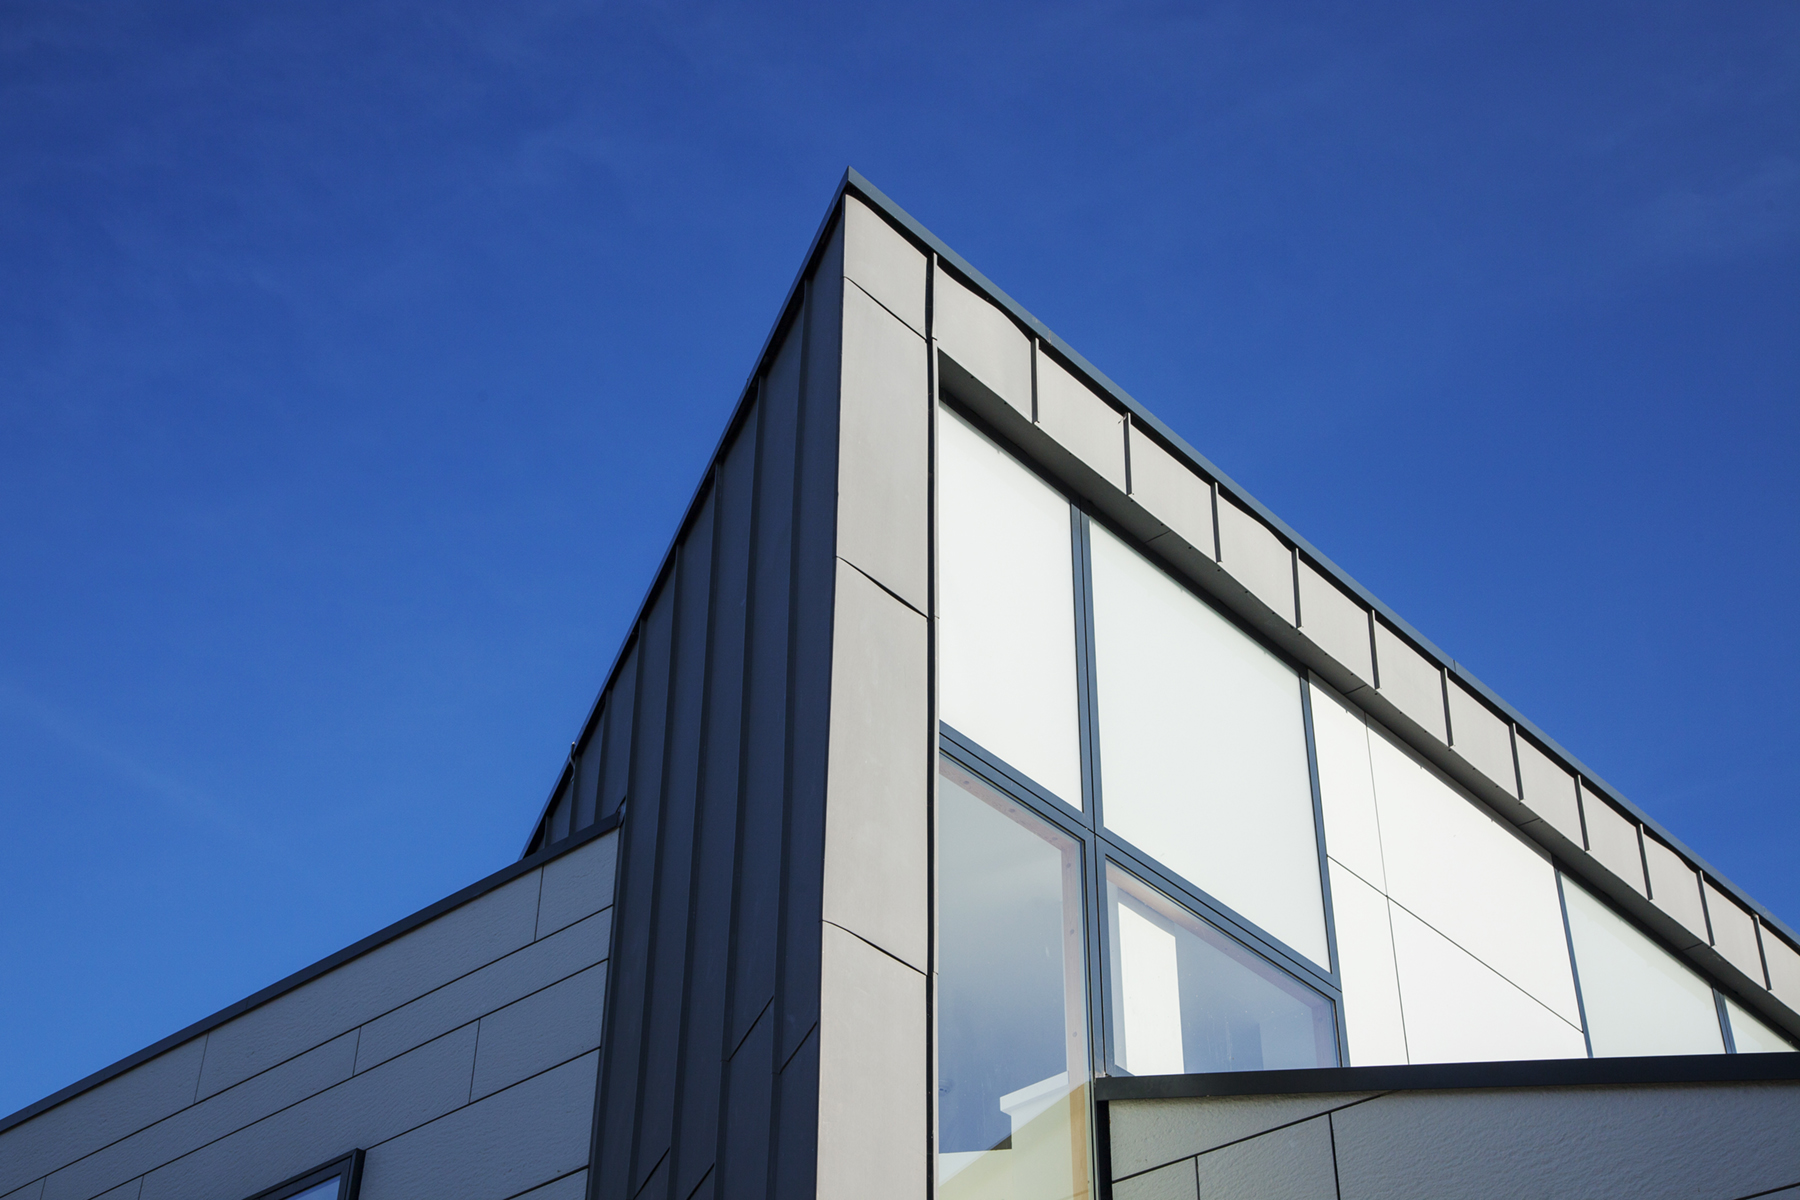 Modern church architectural exterior shot against a blue sky